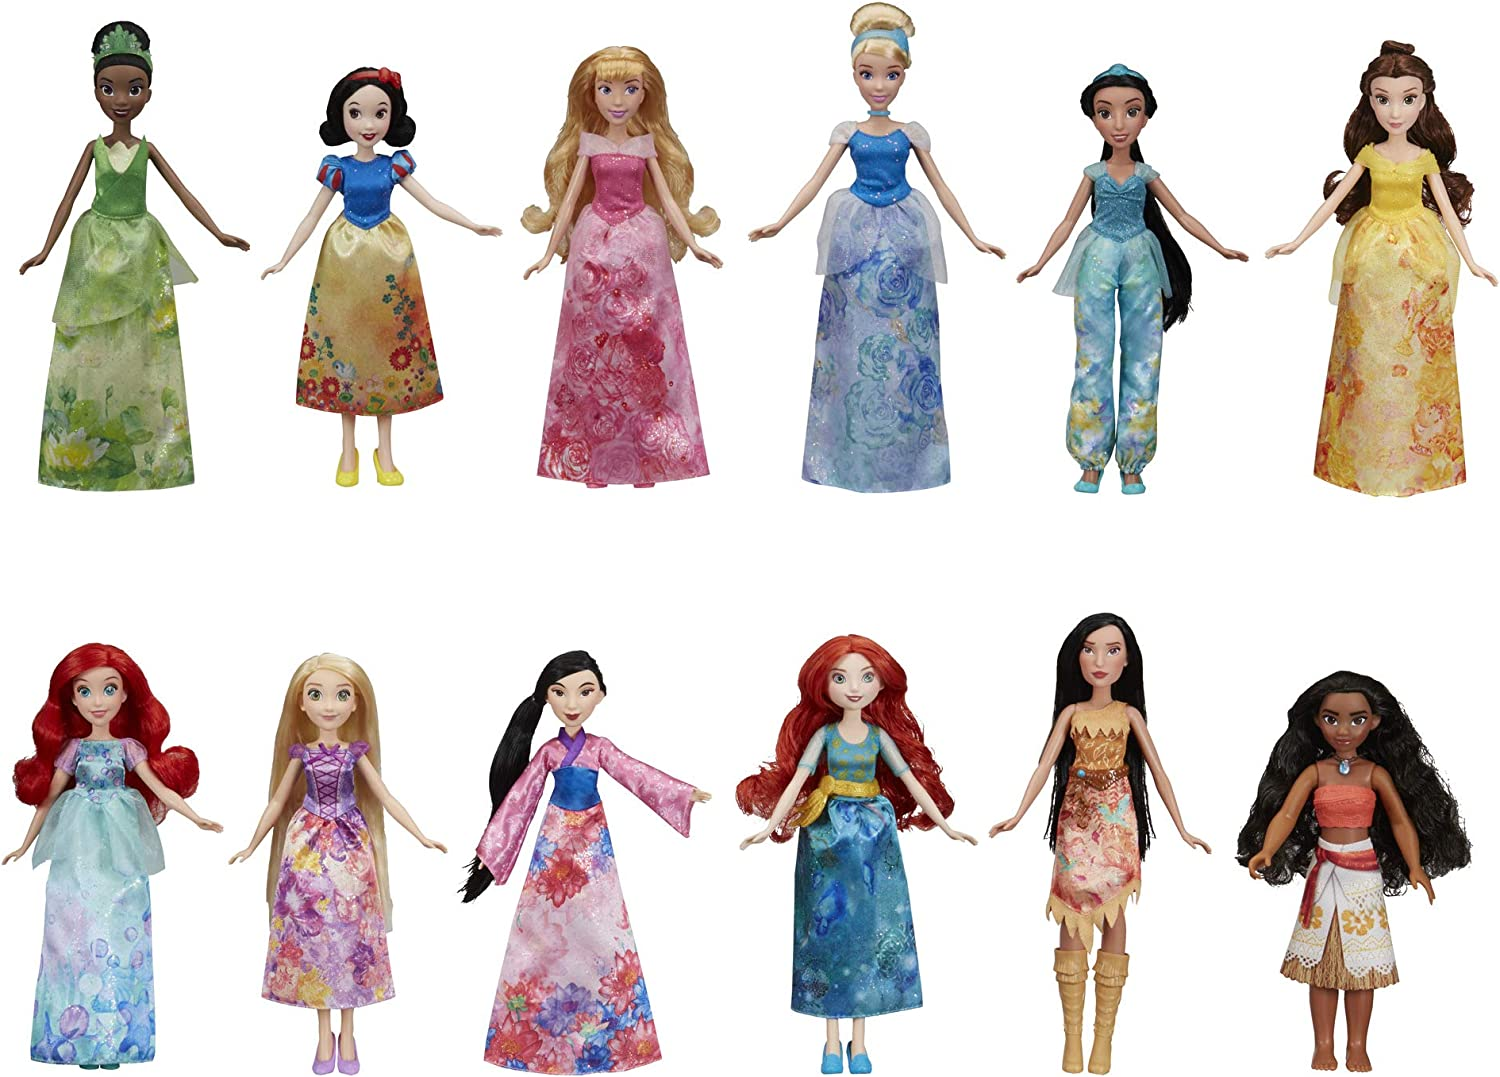 Amazon Com Disney Princess Royal Collection 12 Fashion Dolls Ariel Aurora Belle Cinderella Jasmine Merida Moana Mulan Pocahontas Rapunzel Snow White Tiana Amazon Exclusive Toys Games